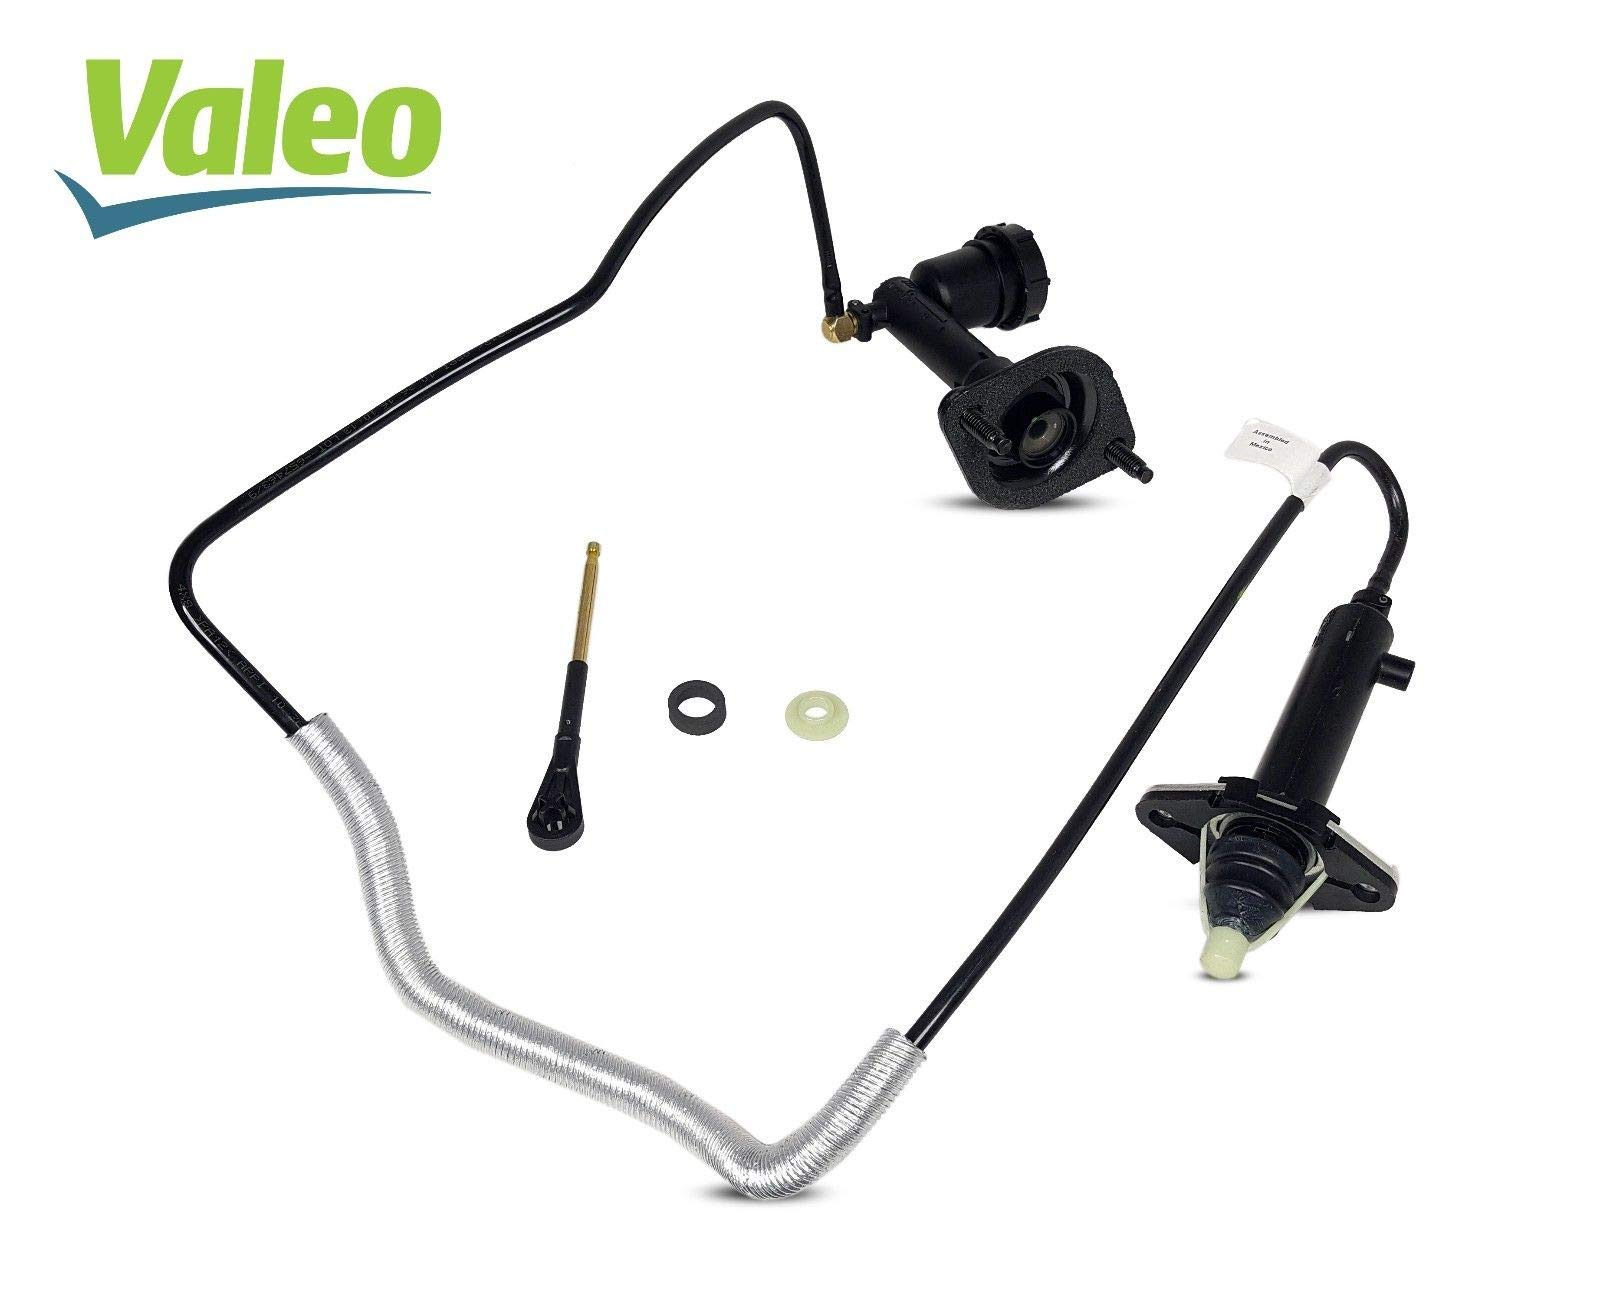 Pre-Filled Clutch Master And Slave Cylinder Line Assembly Valeo Works With Jeep Wrangler Rubicon Sahara Sport Unlimited X 60 Aniversario 2001-2004 4.0L L6 Gas Ohv